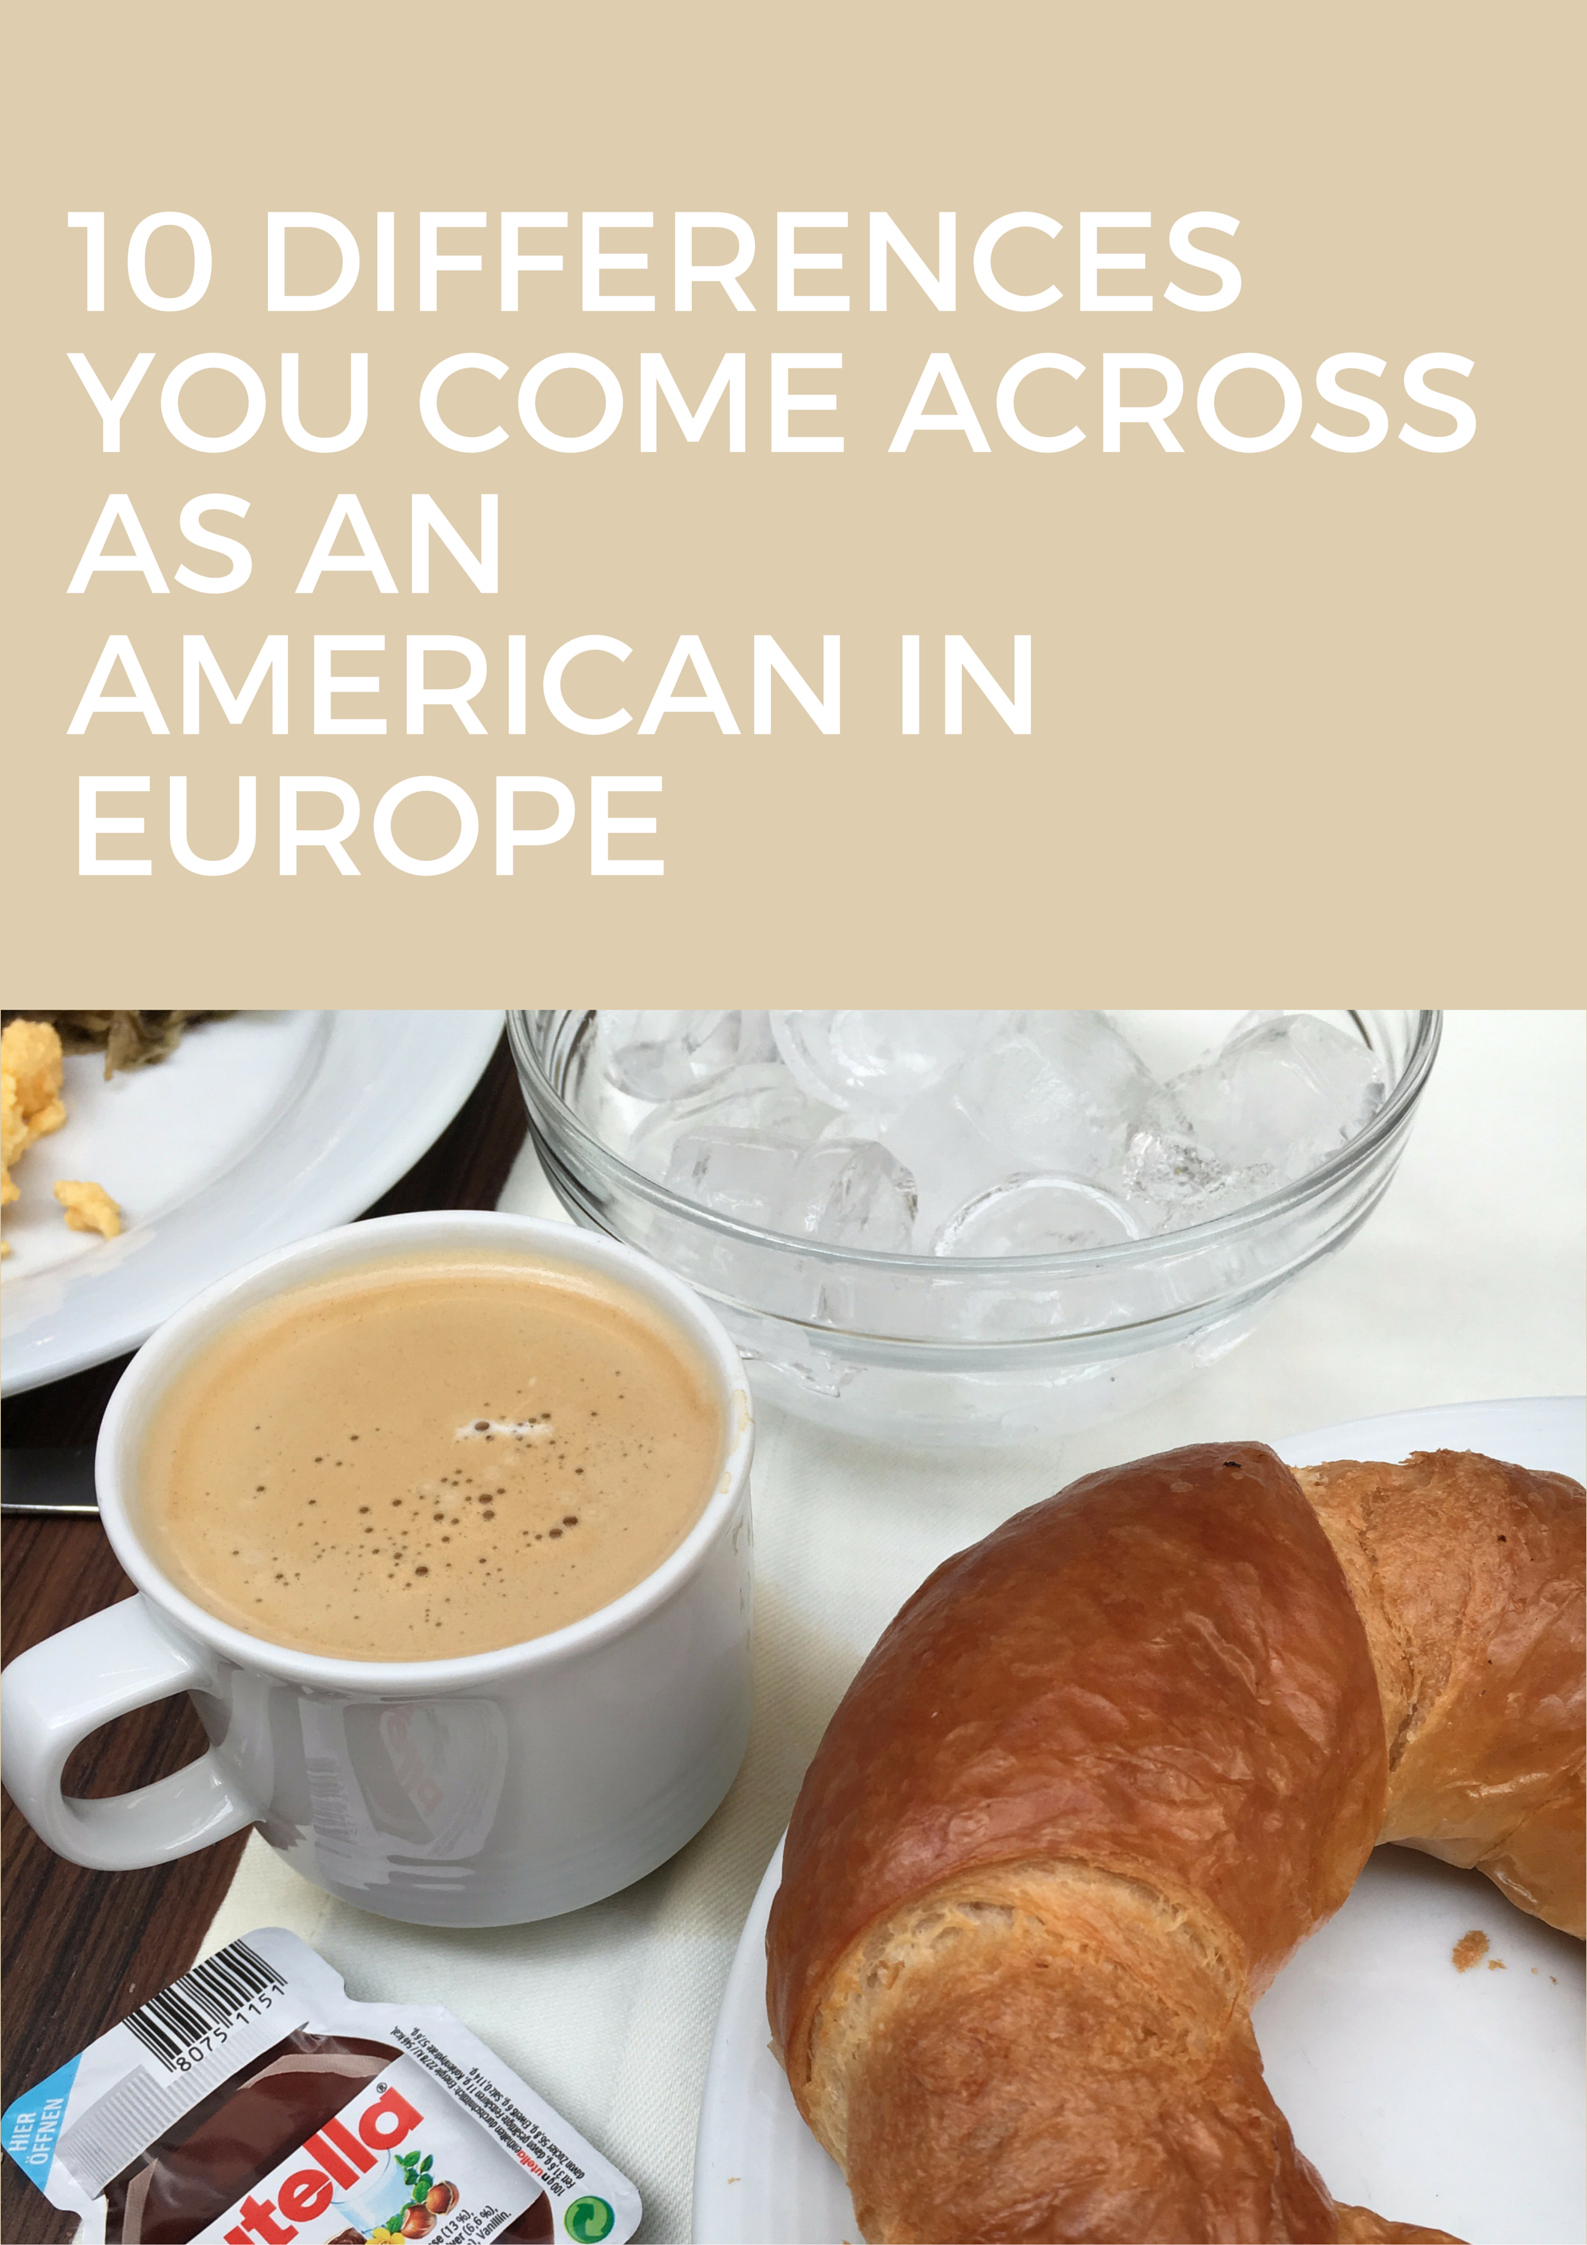 10 cultural differences you'll come across as an American visiting Europe